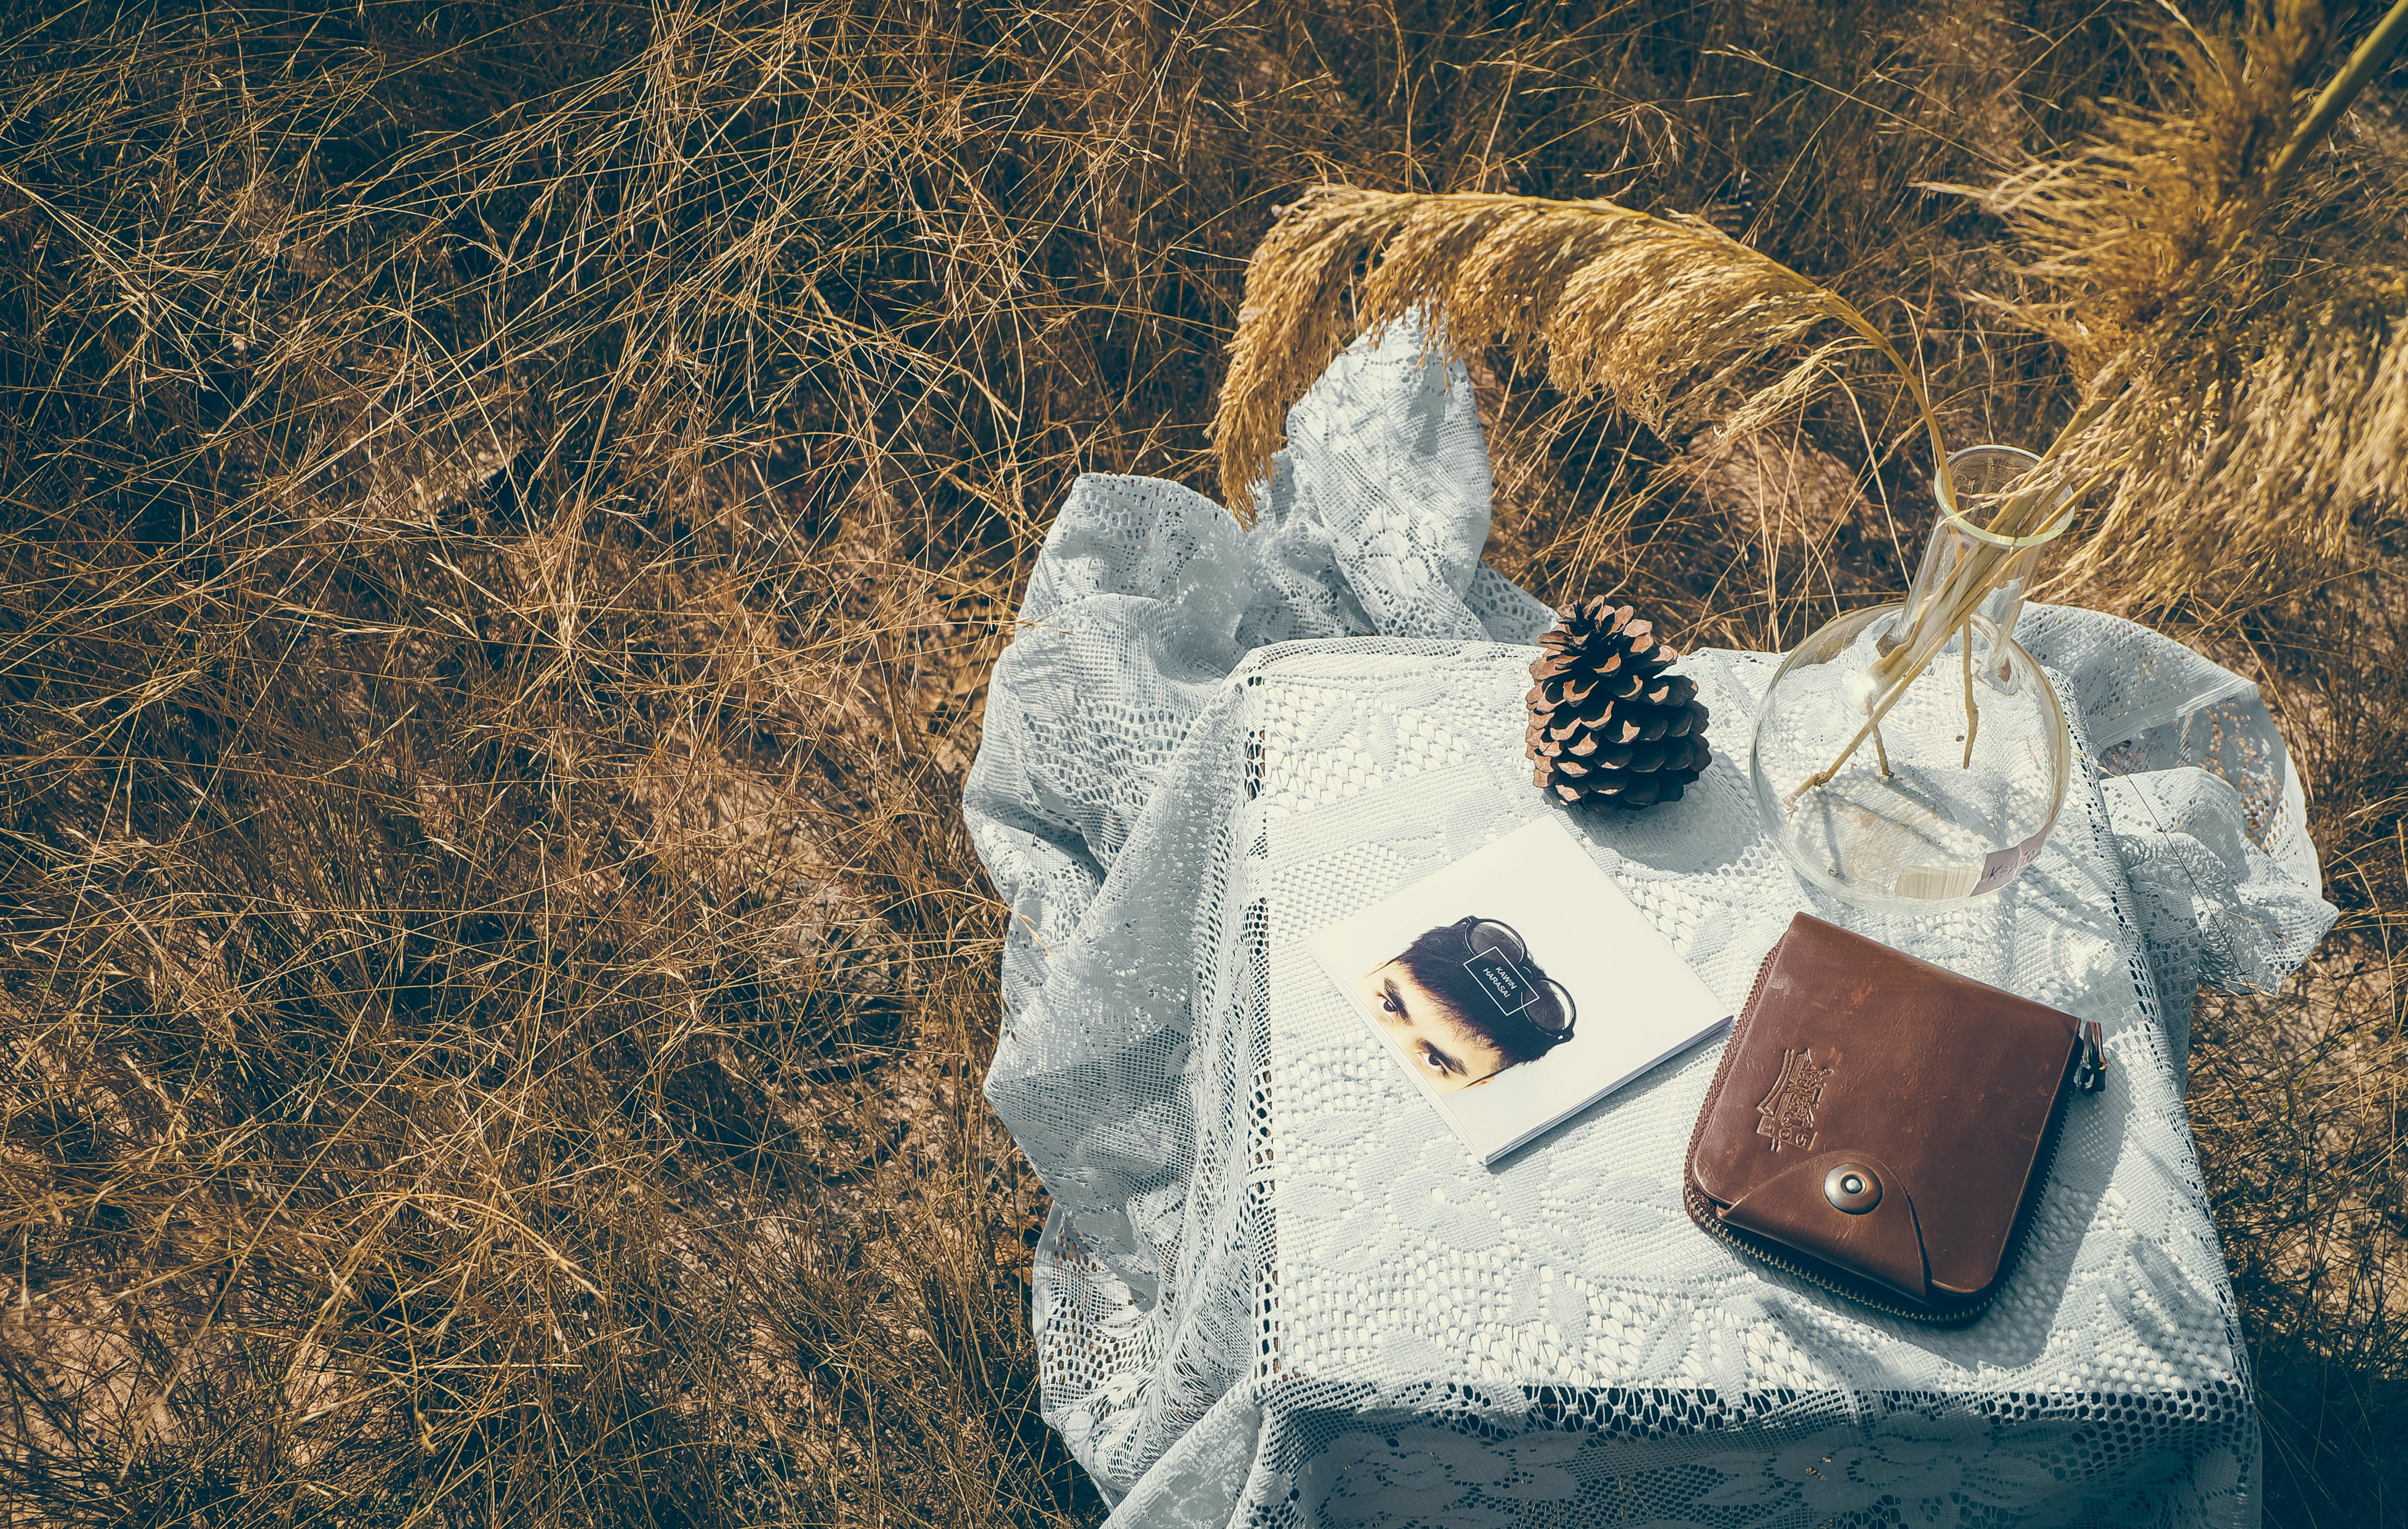 A pine cone, journal, leather bag, and reed diffuser on a lace tablecloth in a wheatfield in Thailand